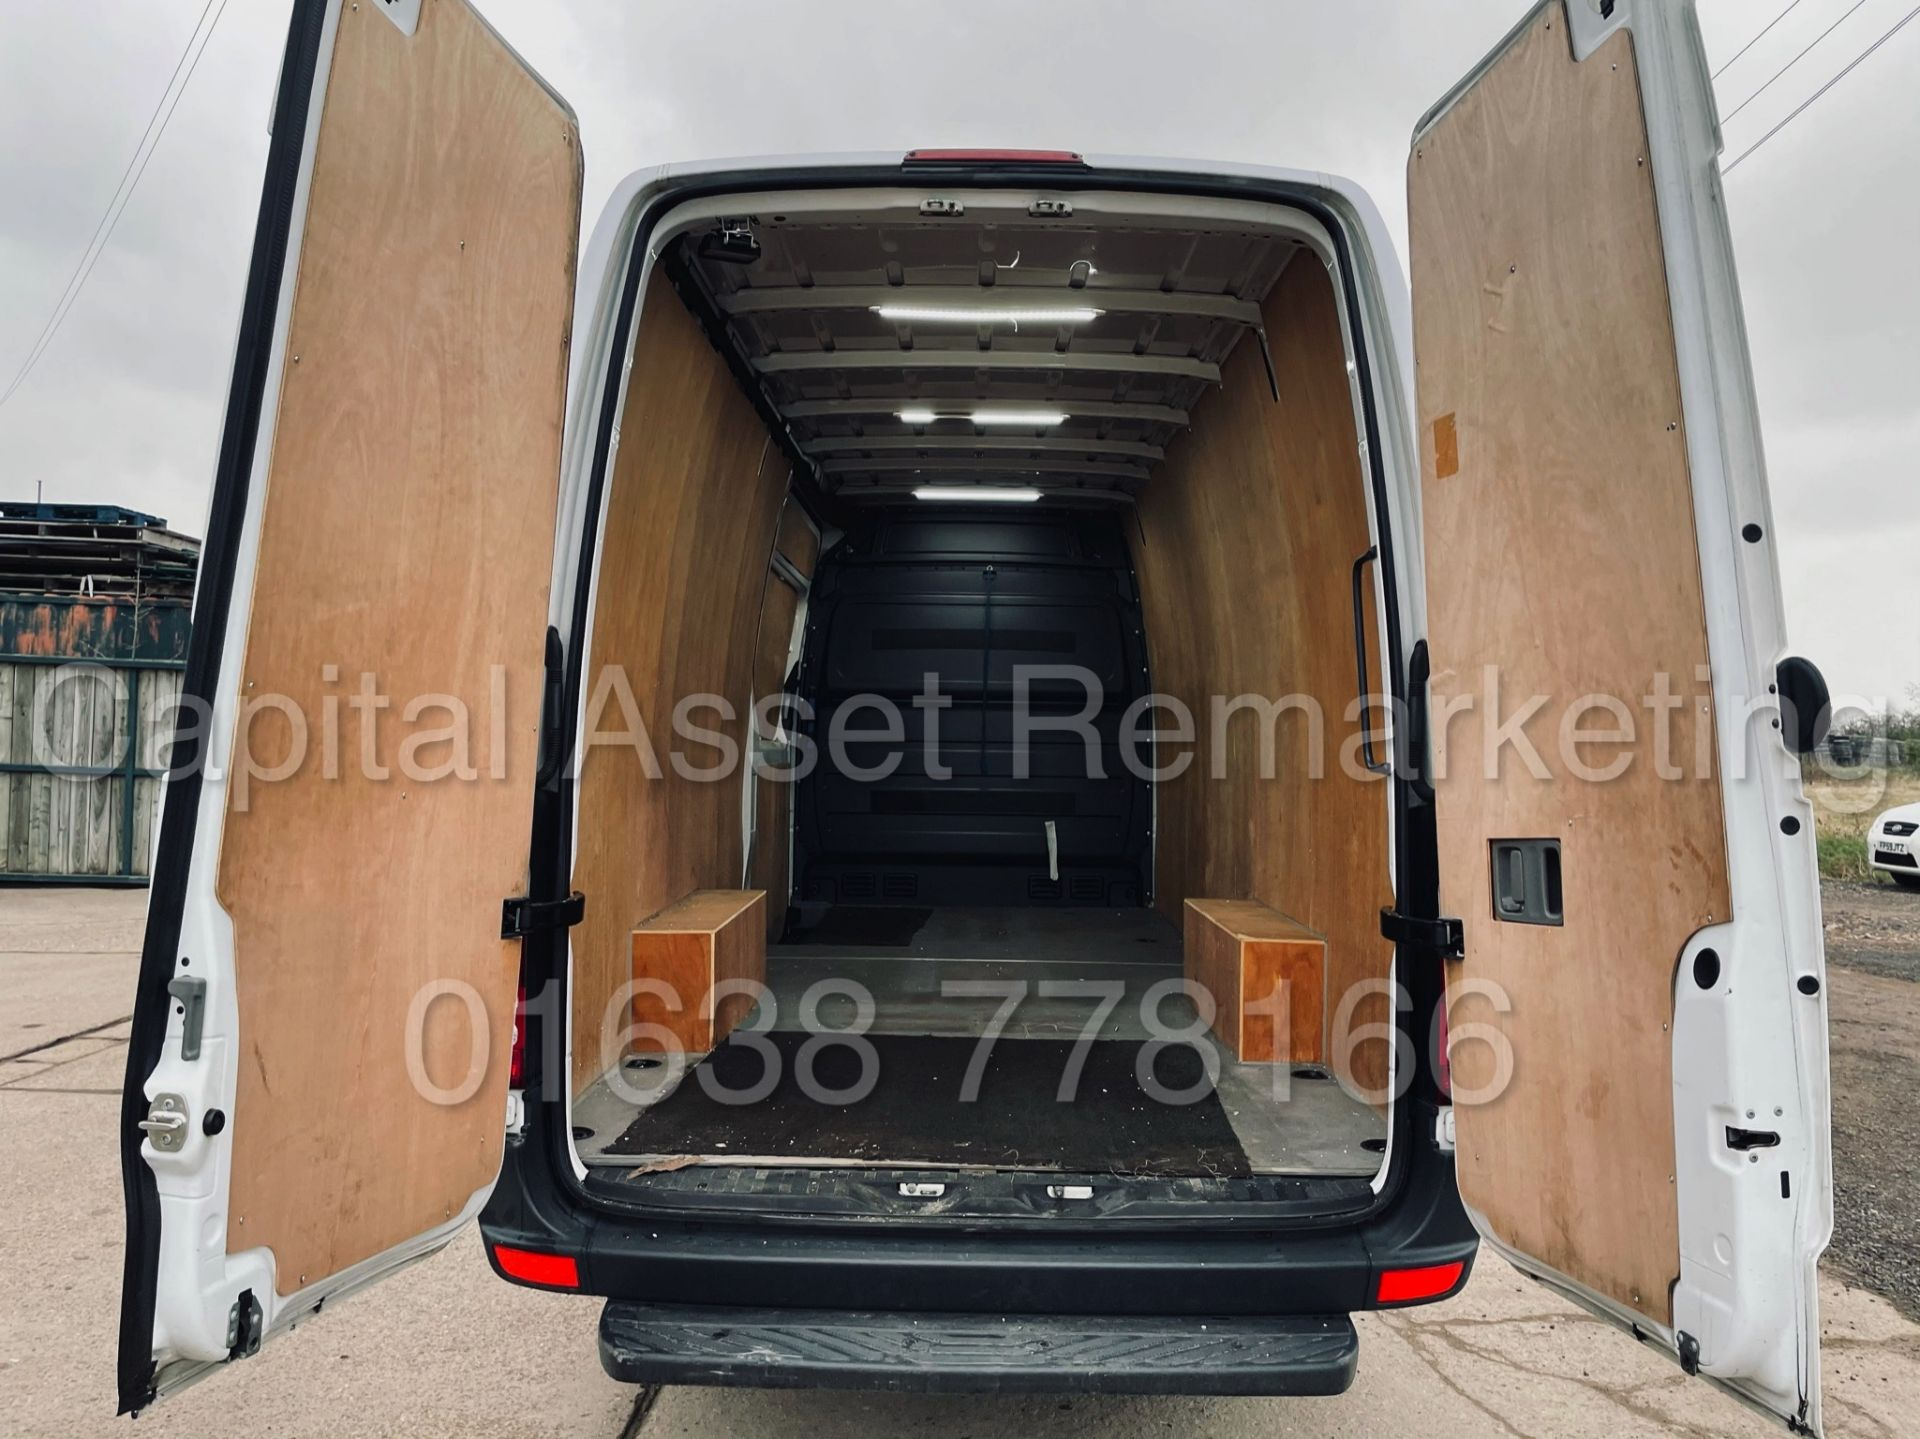 (On Sale) MERCEDES-BENZ SPRINTER 314 CDI *LWB HI-ROOF* (67 REG - EURO 6) '140 BHP-6 SPEED' (1 OWNER) - Image 23 of 37